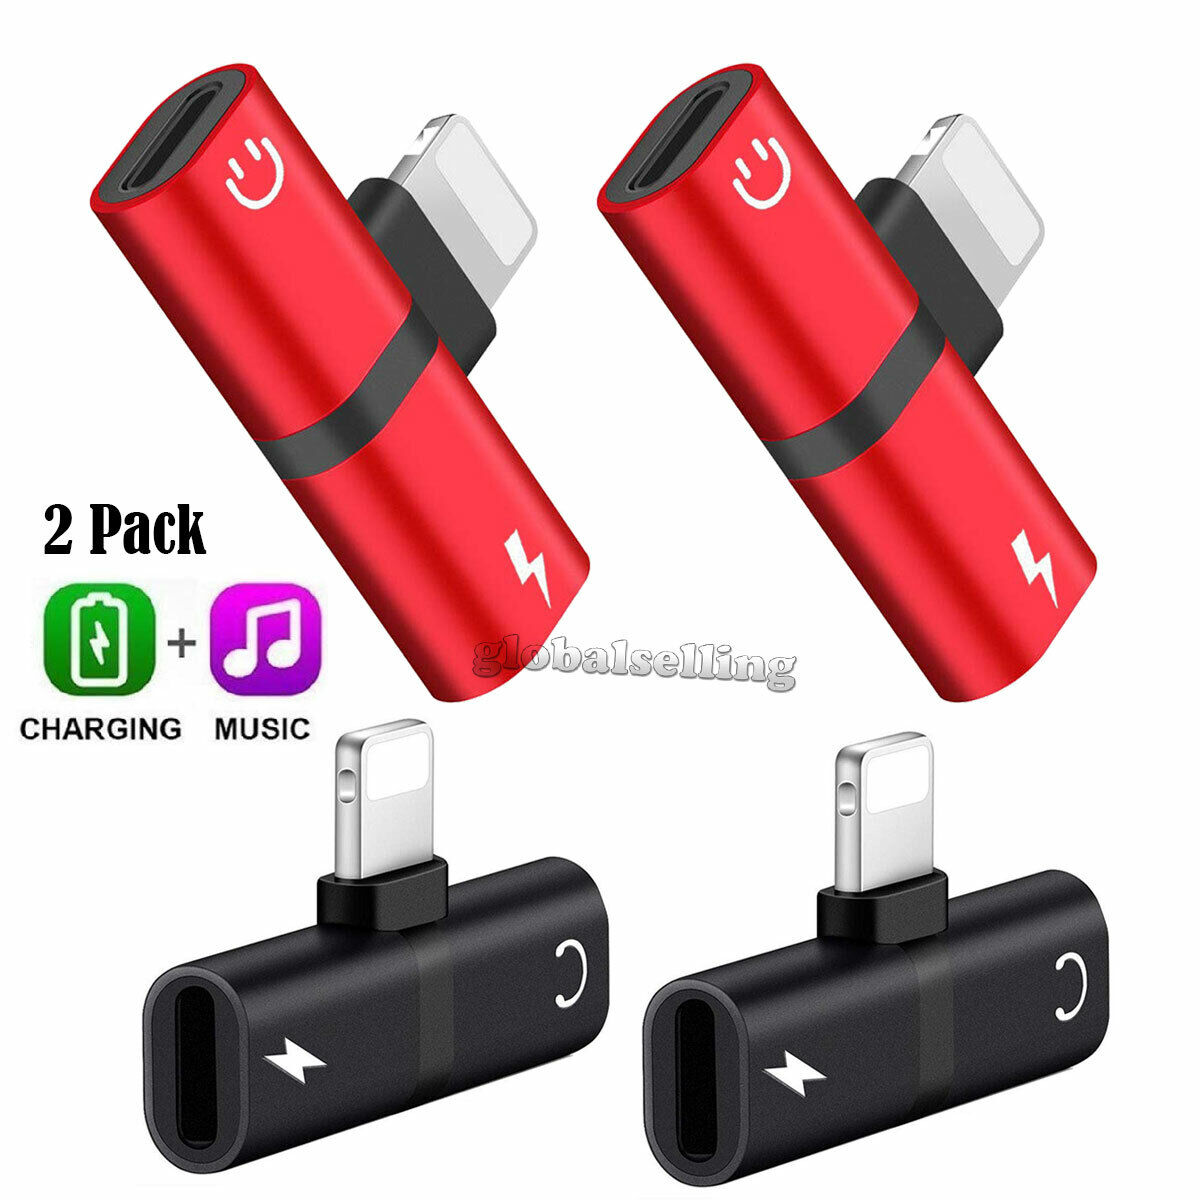 For iPhone X Xs MAX 8 7 Plus iOS 11 12 Aux Audio Charge Adap